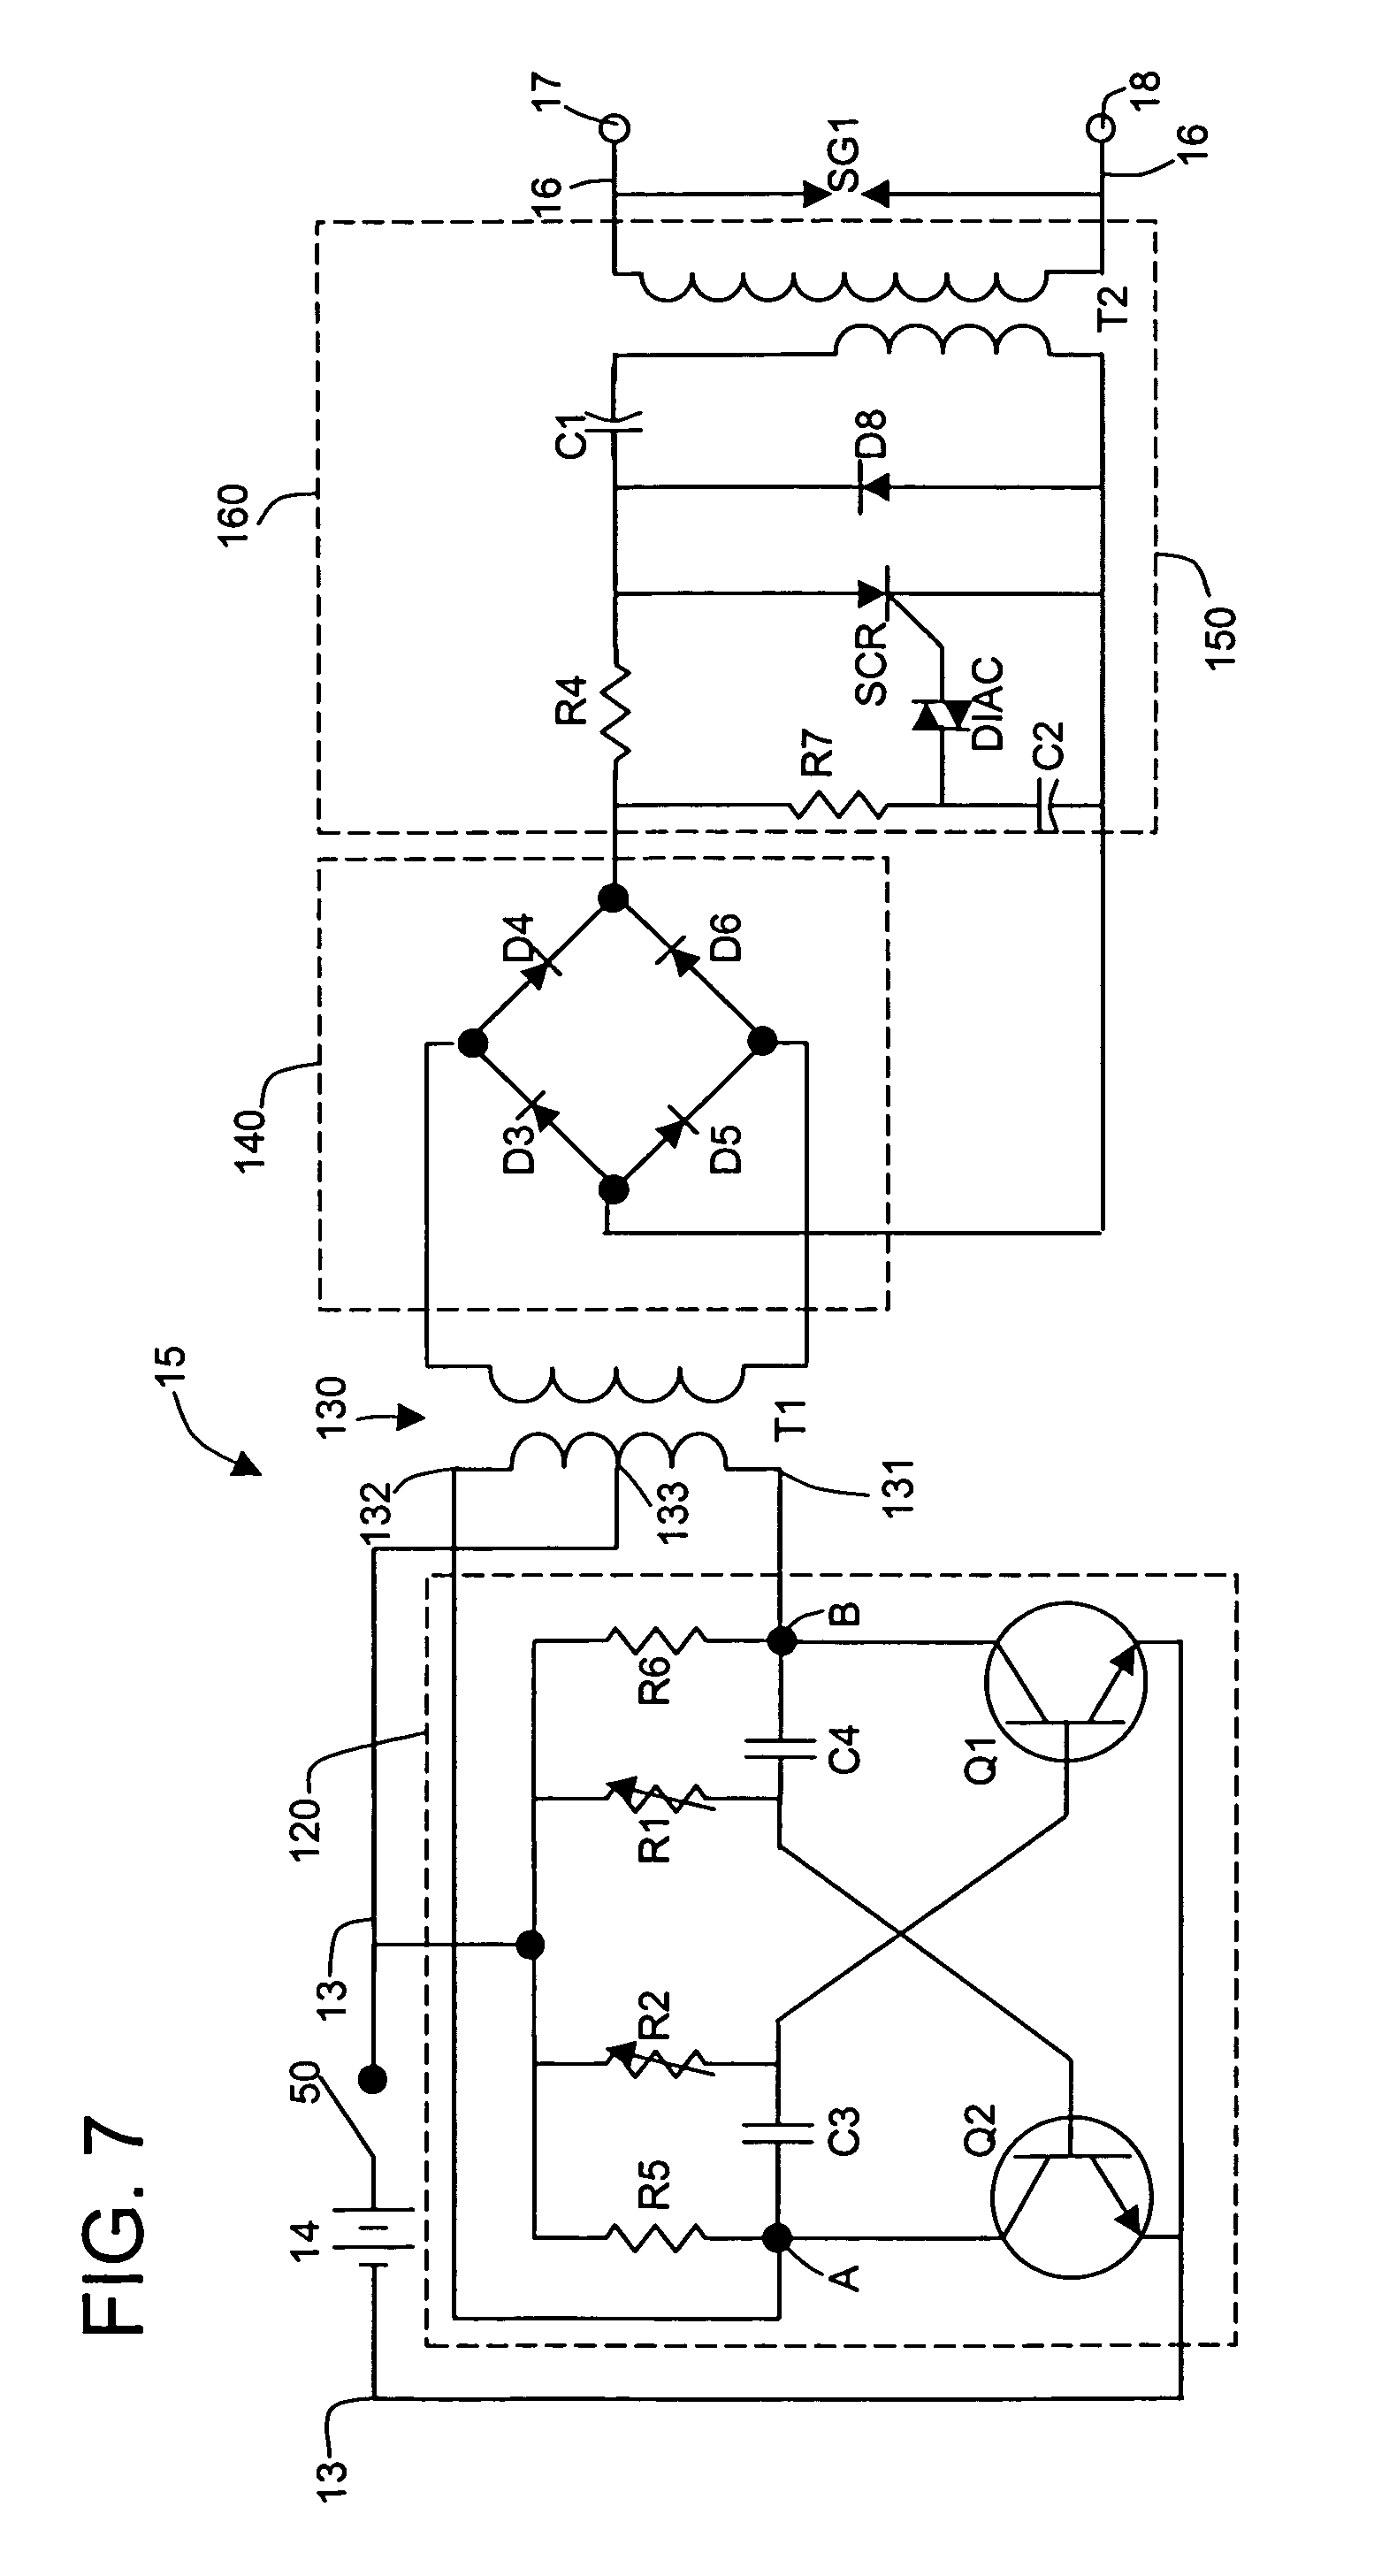 patent drawing images